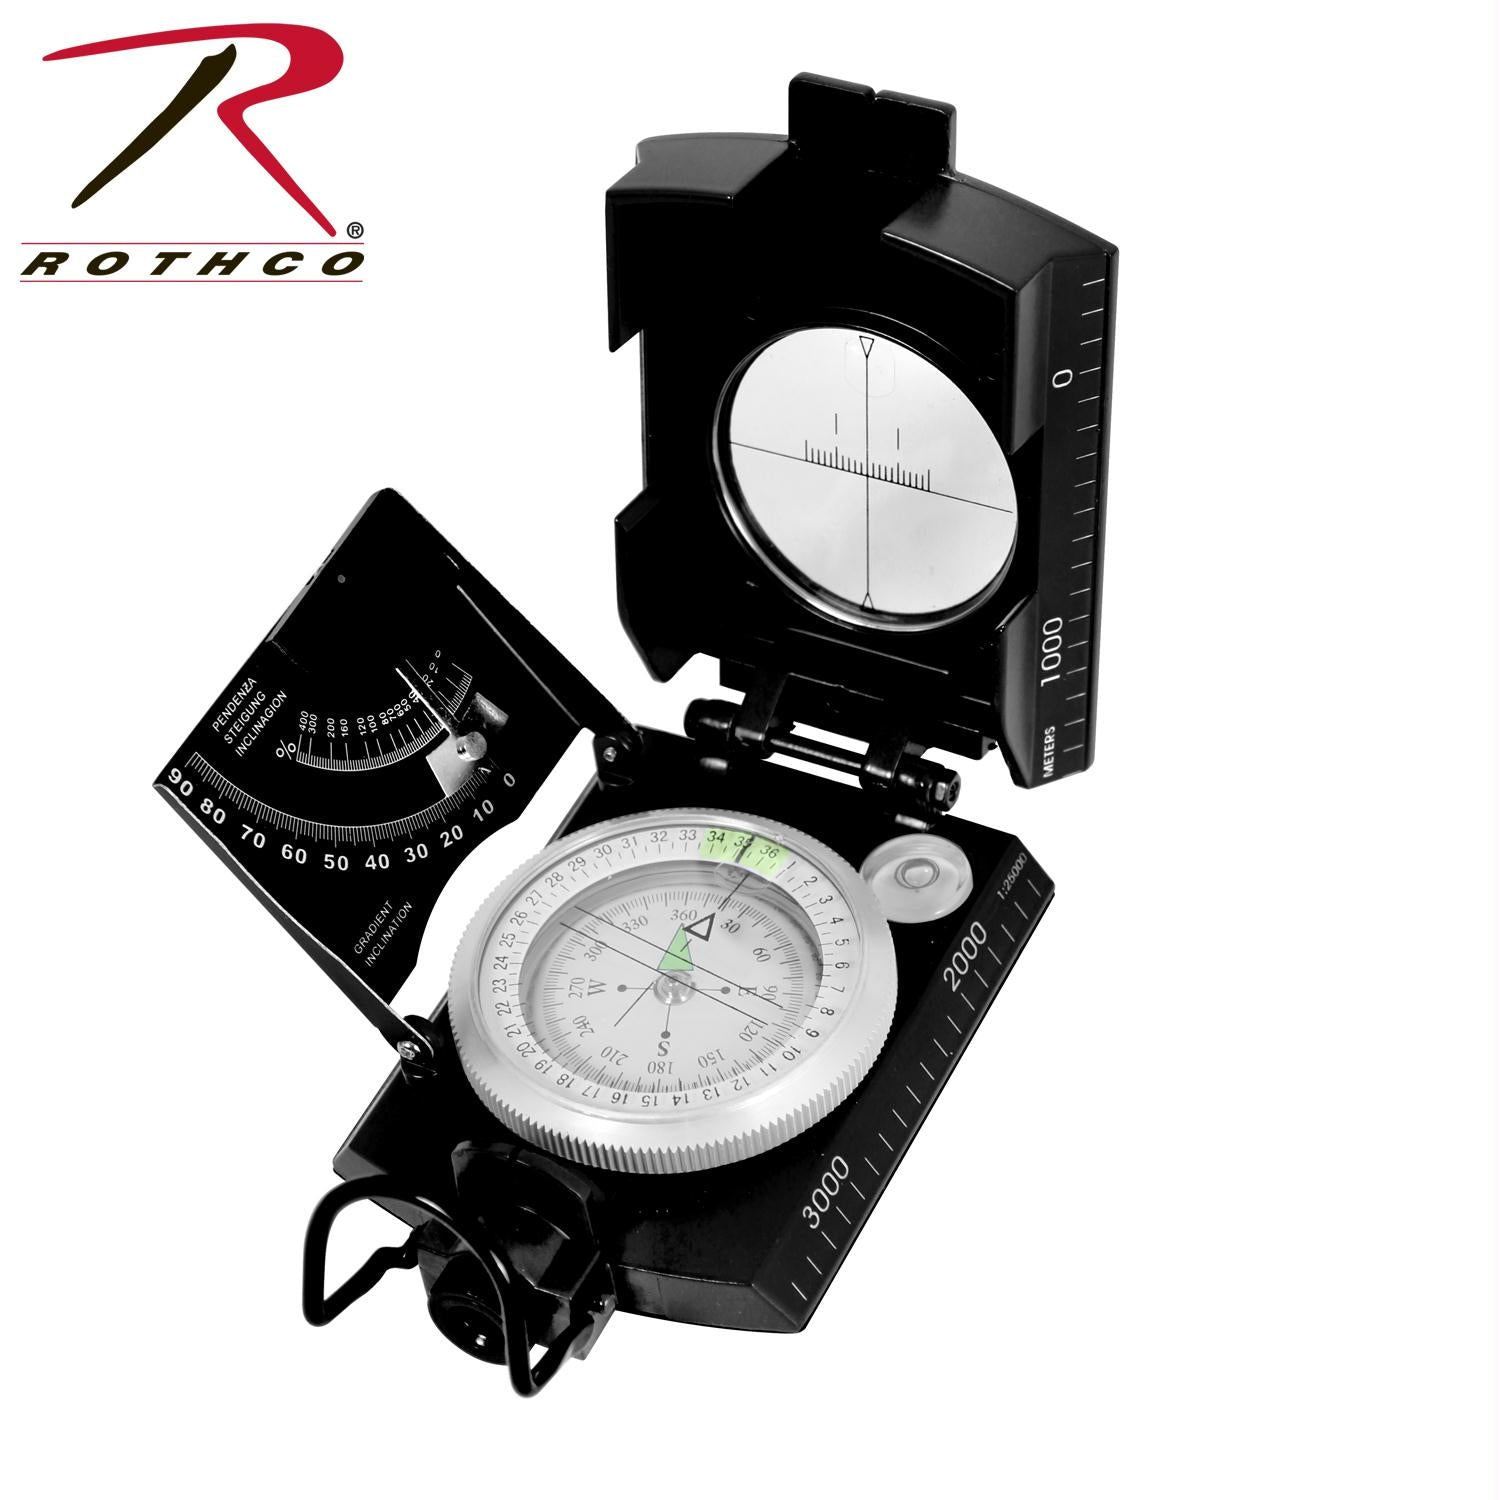 Rothco Deluxe Marching Compass - Black